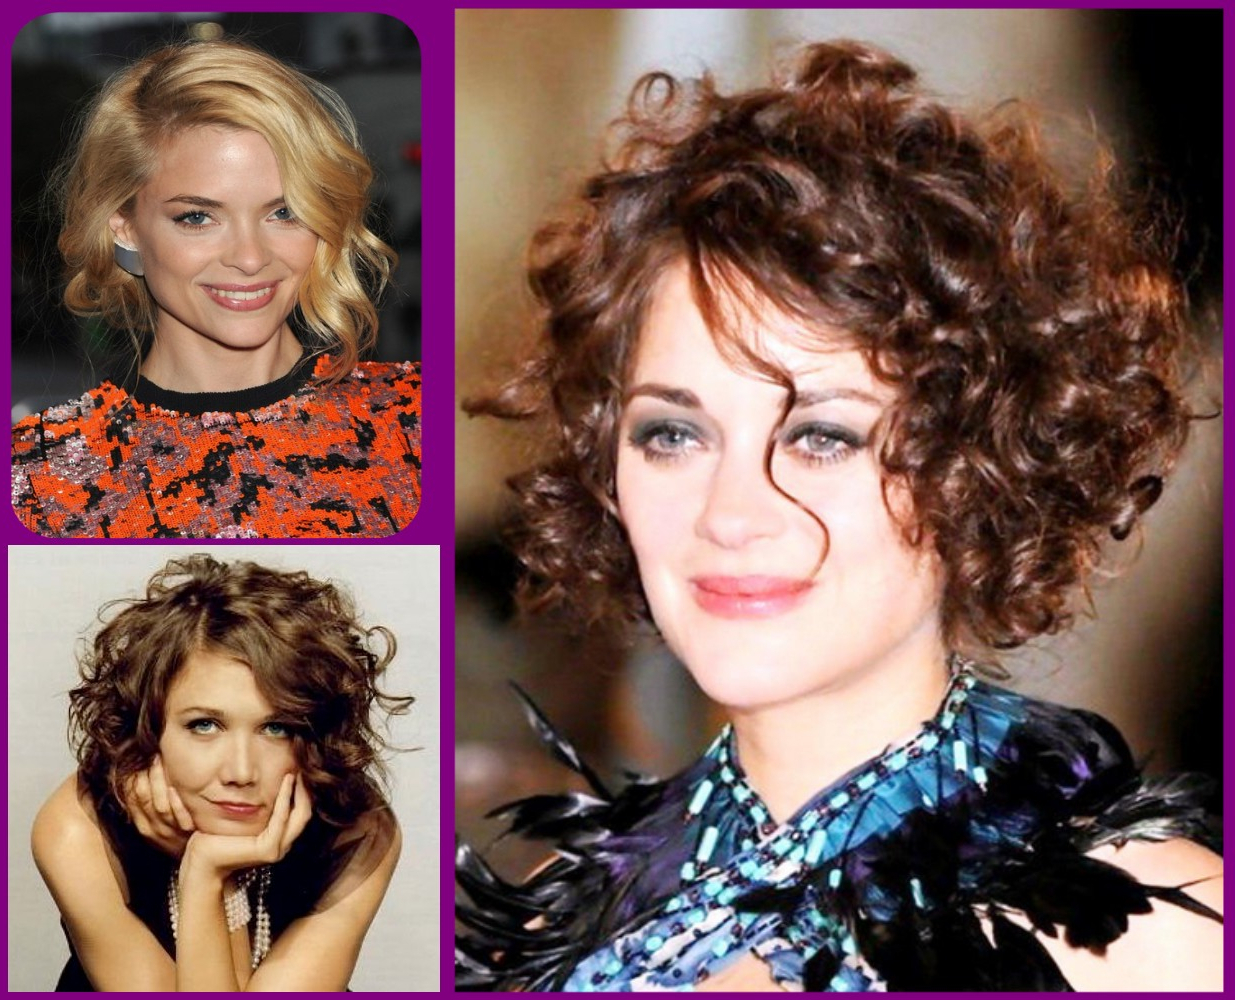 Asymmetric Bob Short Haircut For Wavy Hair Round Face – Hairstyles With Regard To Short Haircuts For Curly Hair And Round Face (Gallery 20 of 25)